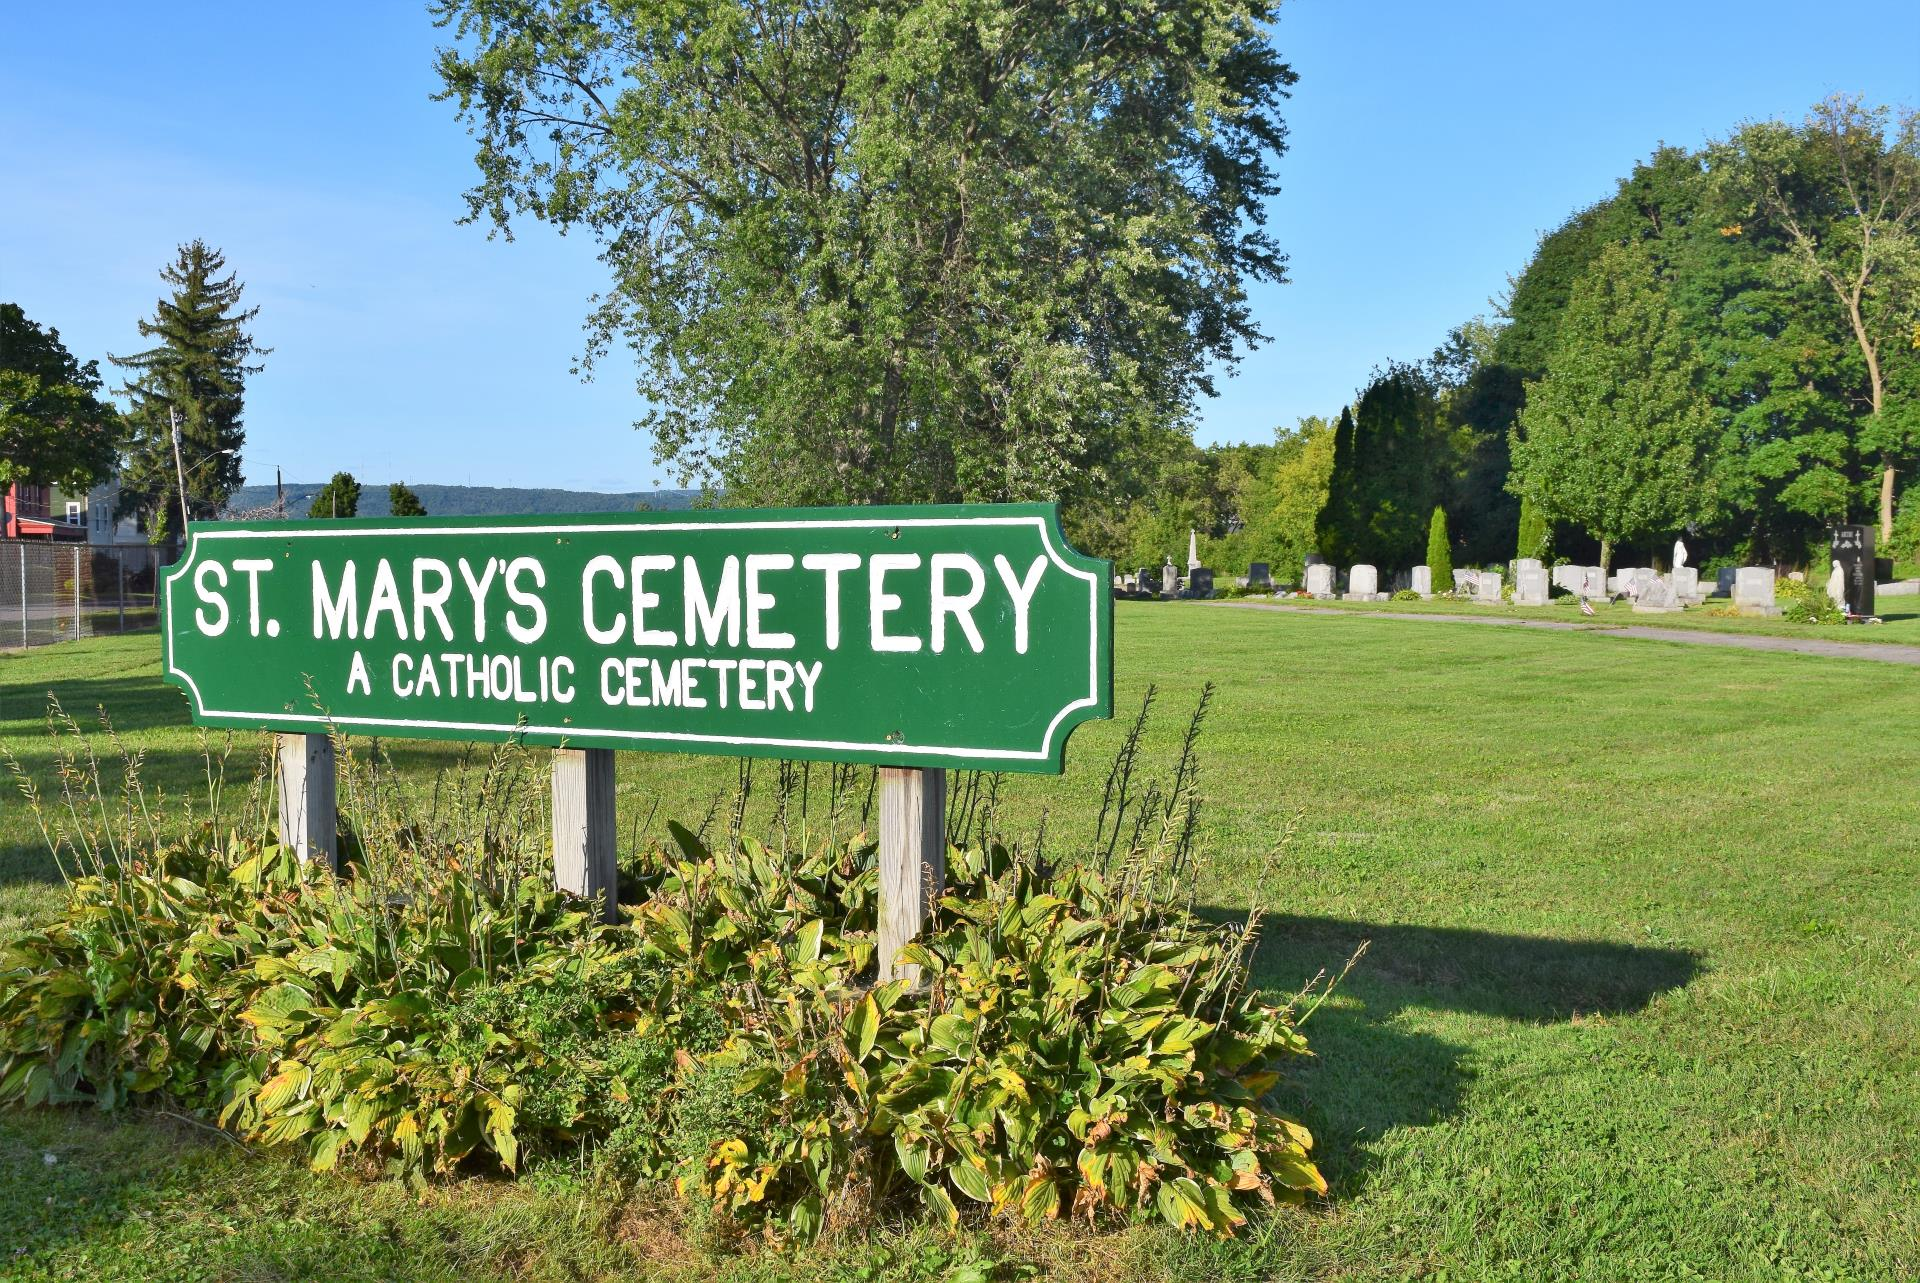 Entrance sign to St. Mary's Cemetery